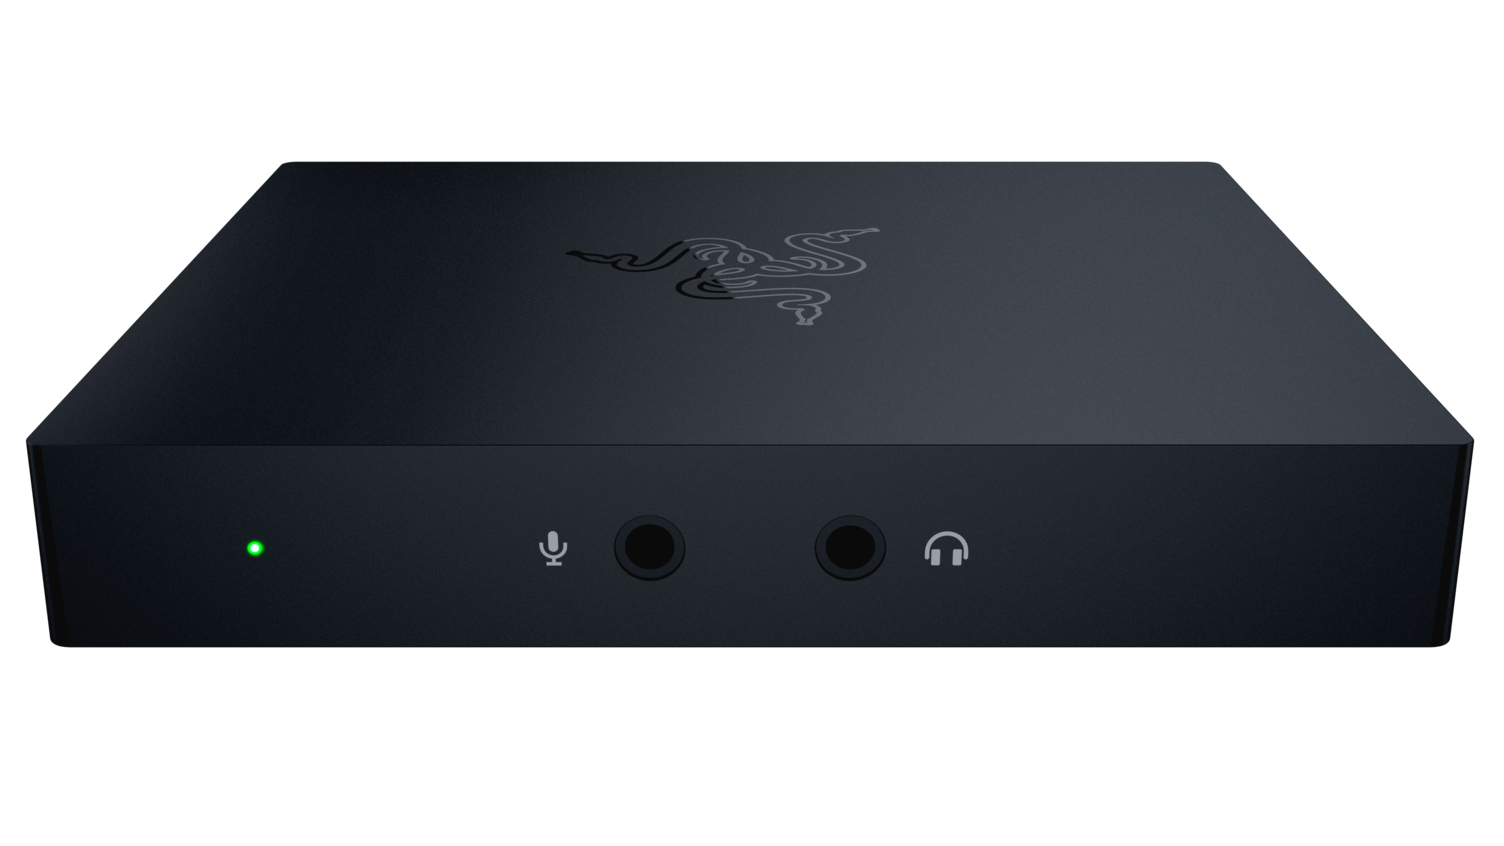 Razer Ripsaw HD video capturing device HDMI